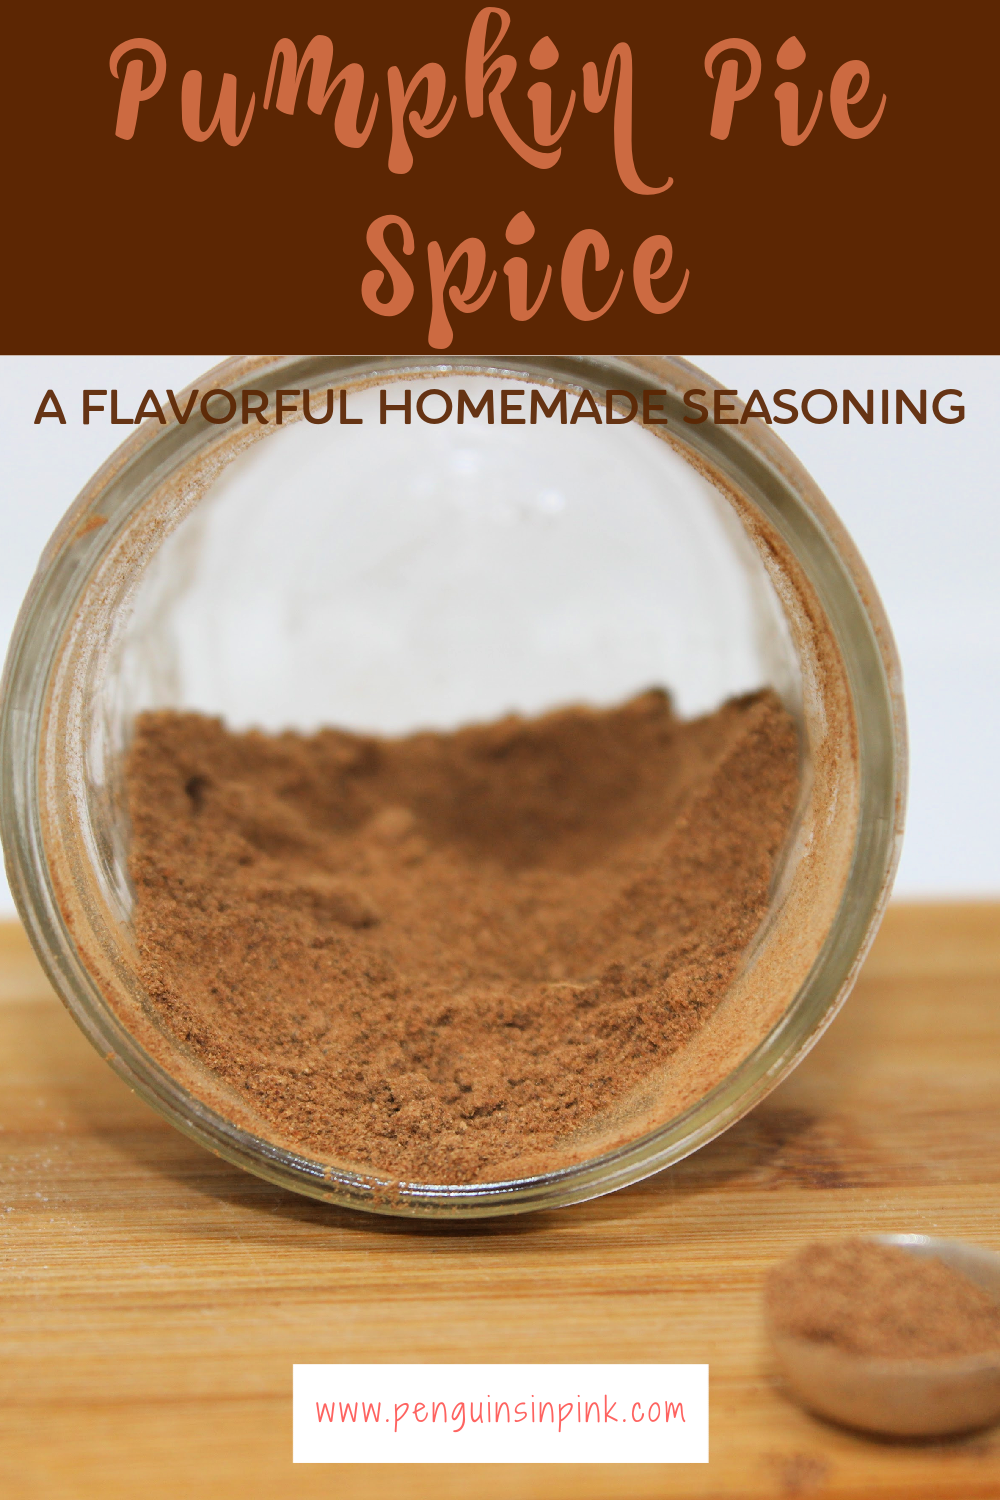 Homemade pumpkin pie spice is a staple spice of many fall treats. A fragrant blend of cinnamon, nutmeg, ginger, allspice, and cloves spices that is incredibly easy to make.